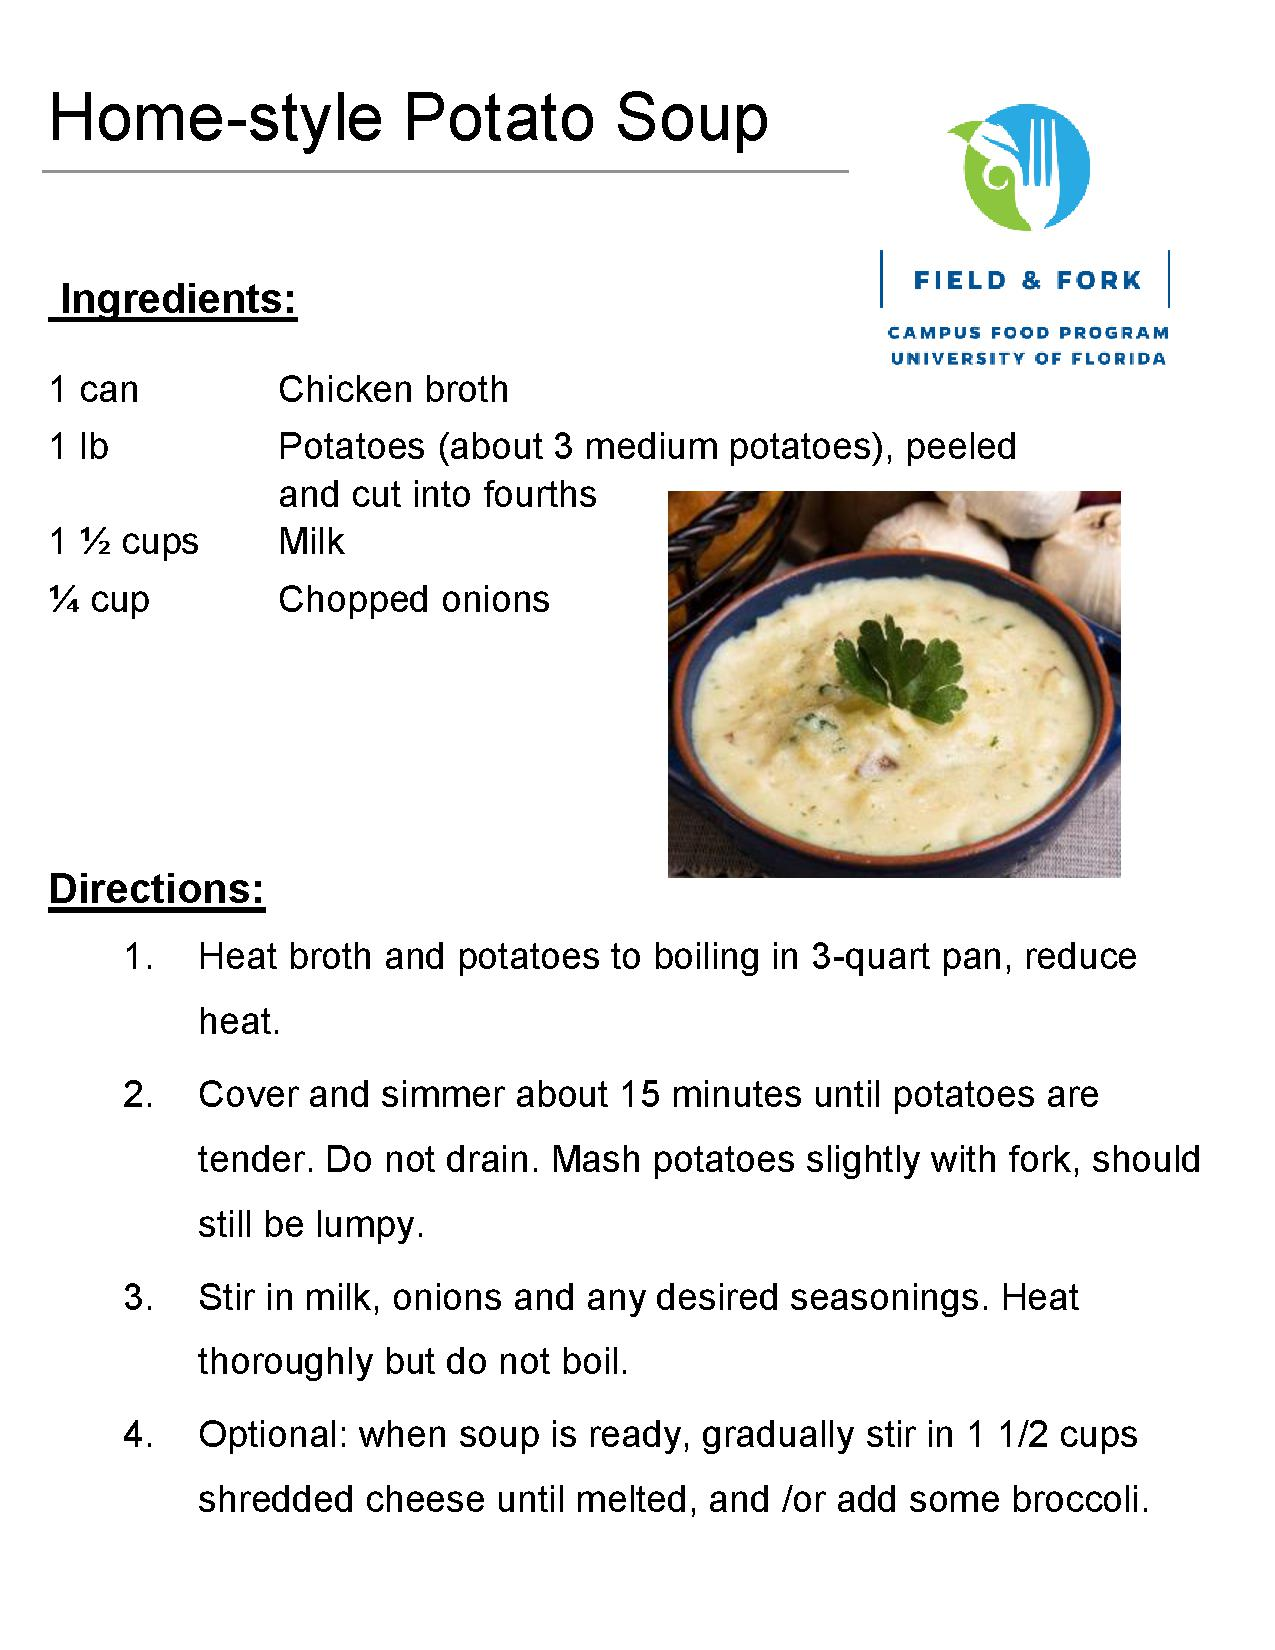 Recipes the pantry download the home style potato soup recipe in pdf forumfinder Gallery